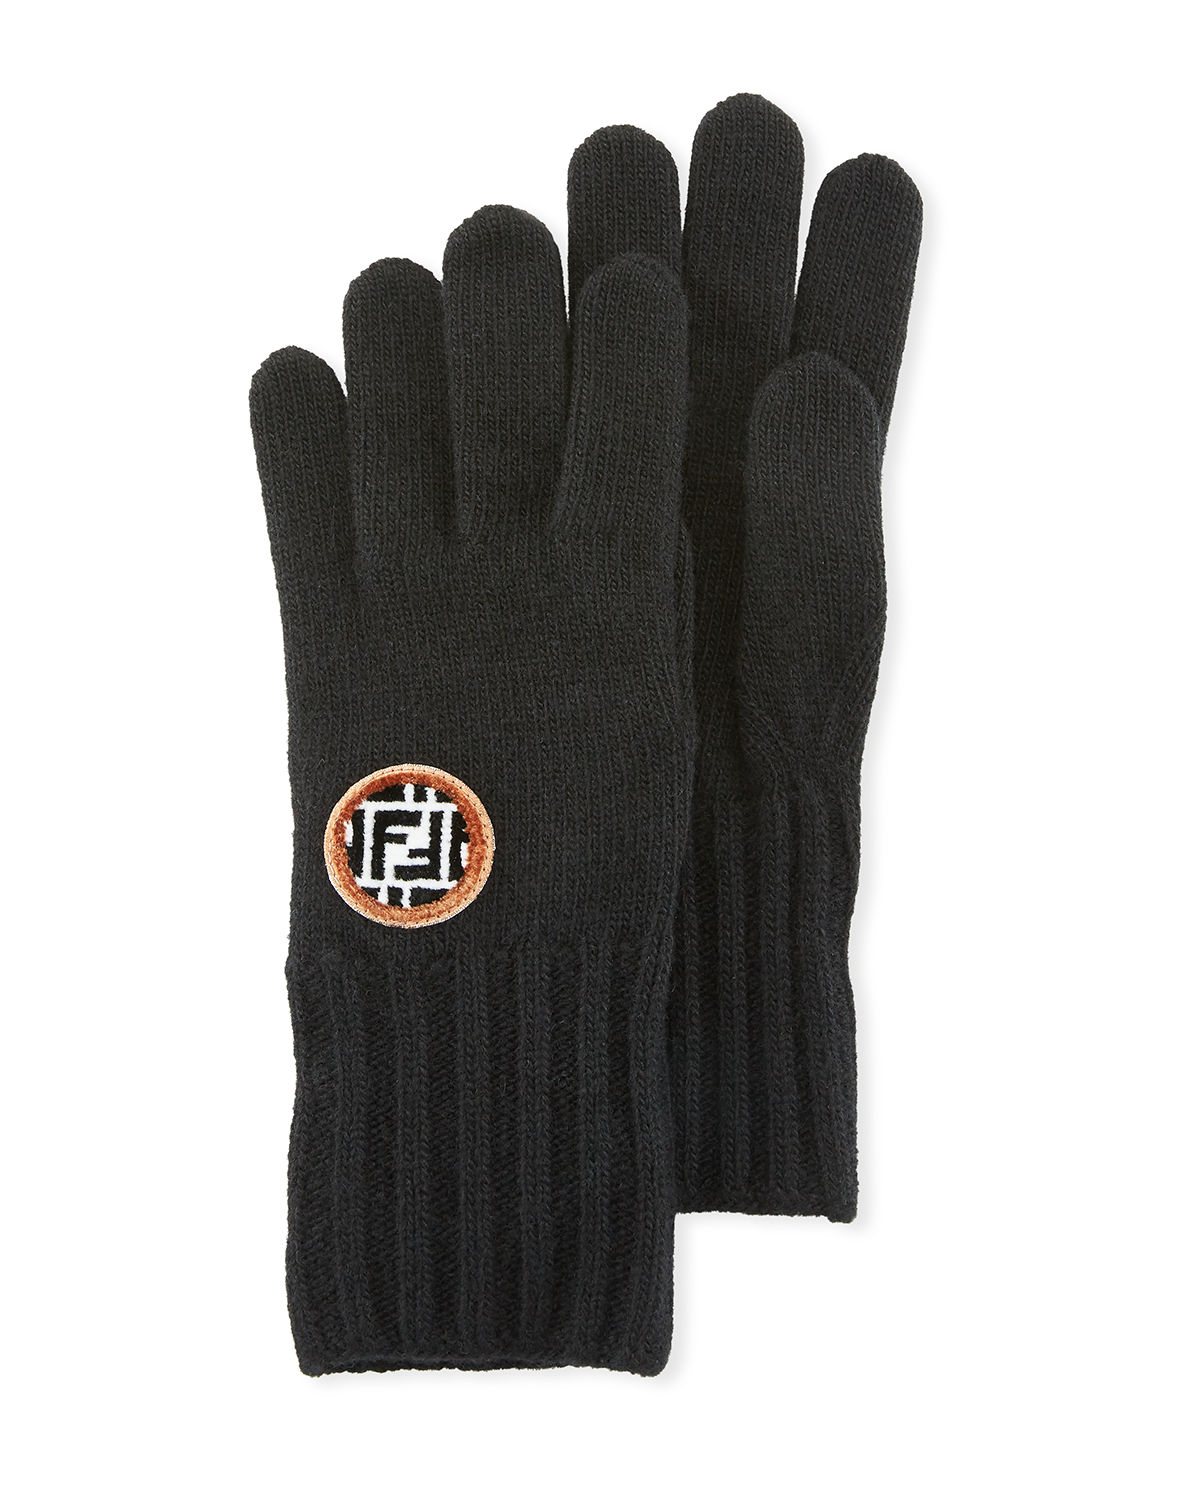 Wool/Cashmere FF Knit Gloves